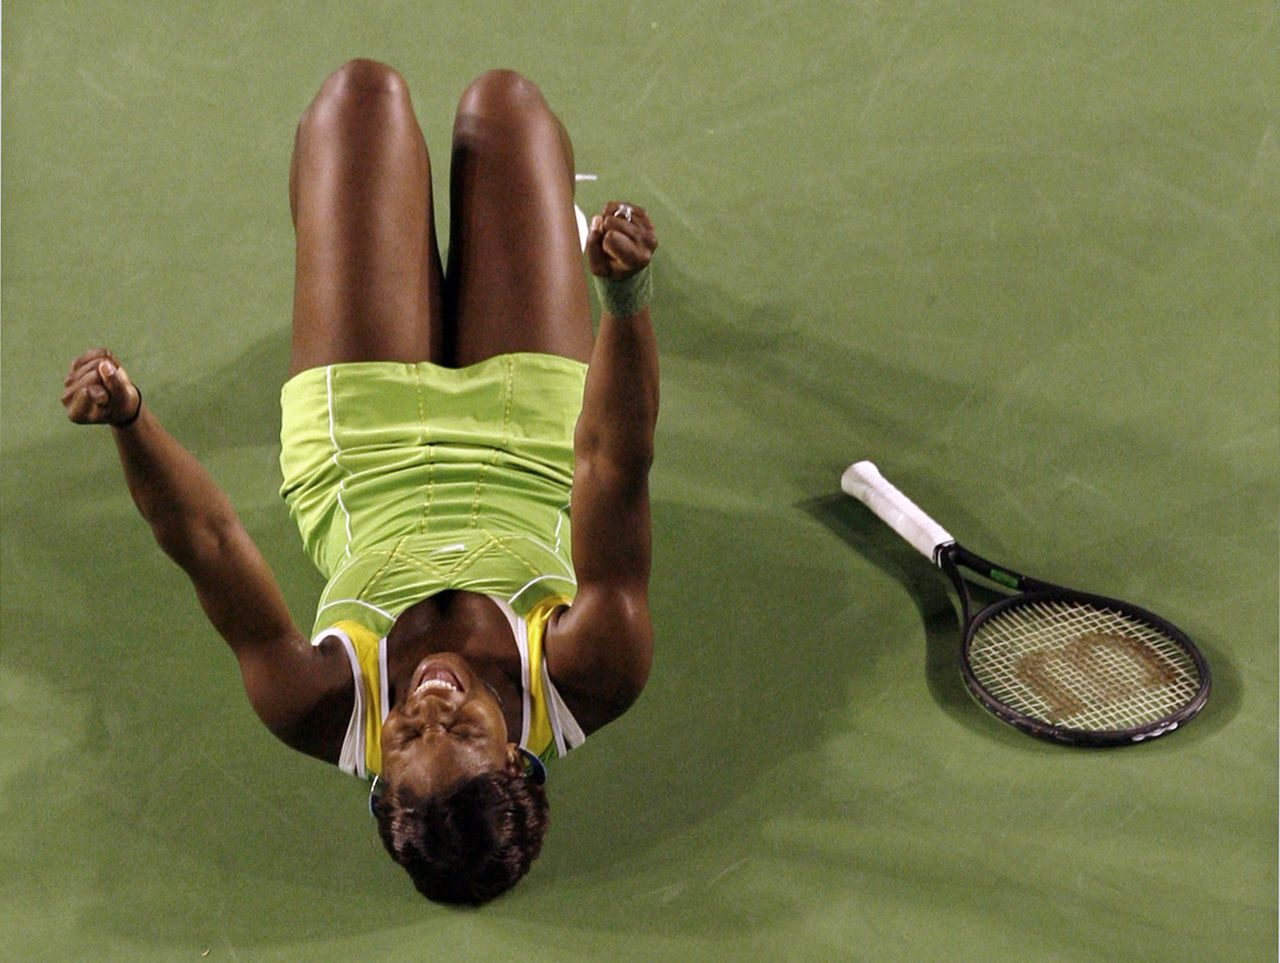 Serena Williams viert haar overwinning. Foto Reuters Serena Williams of the U.S. reacts after winning the women's final match against Russia's Maria Sharapova at the Australian Open tennis tournament in Melbourne January 27, 2007. REUTERS/David Gray (AUSTRALIA)